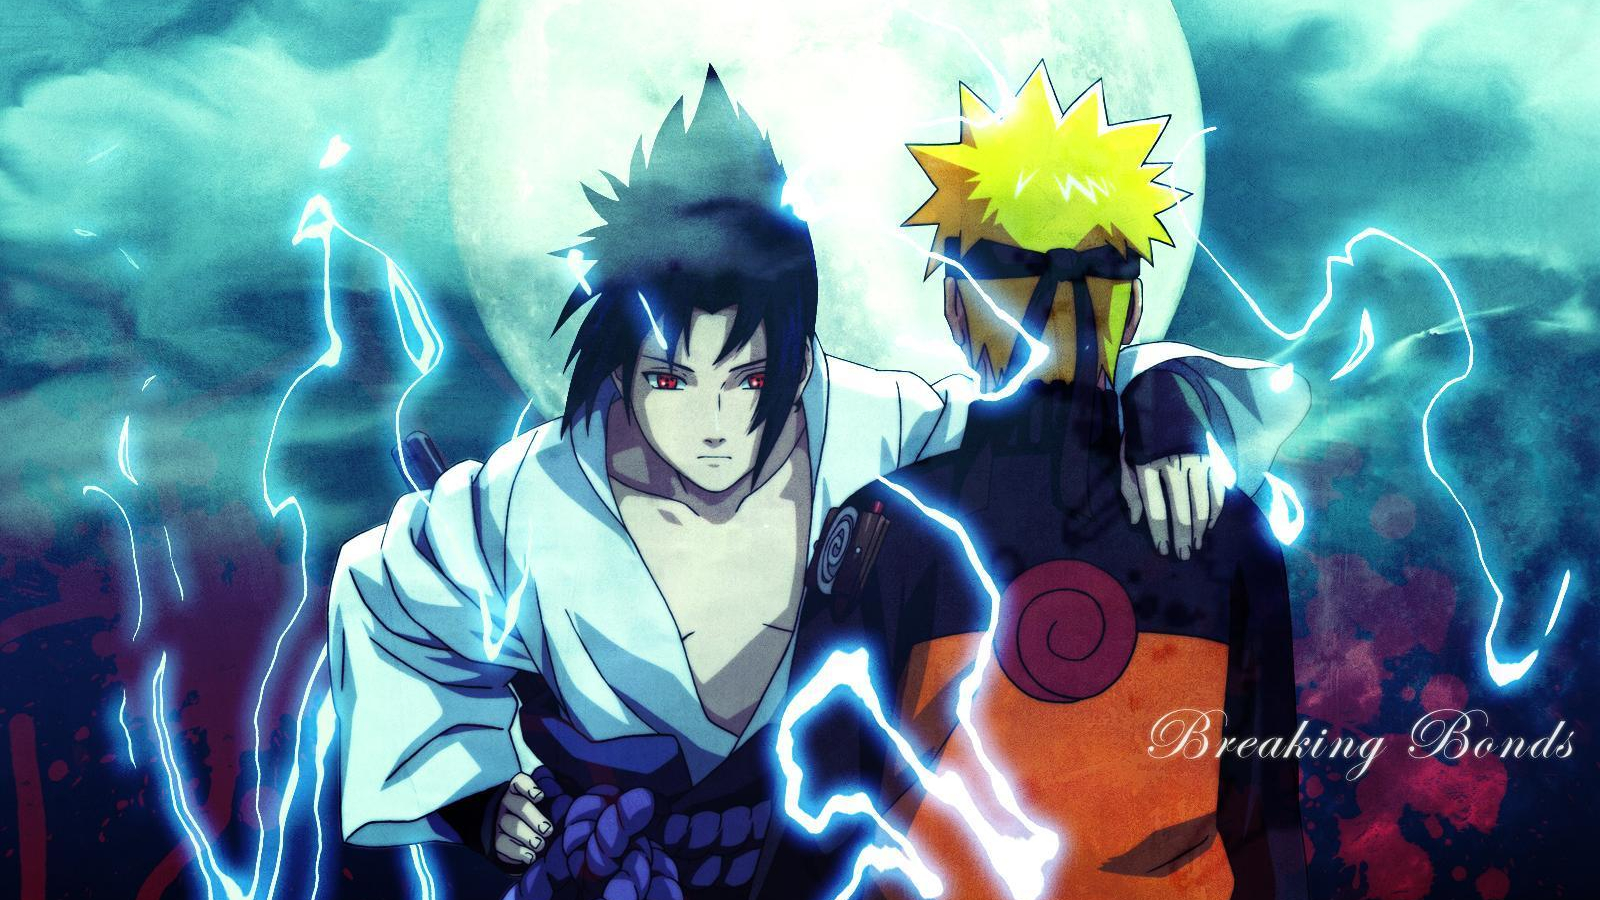 Free Download Naruto Shippuuden Images Naruto Vs Sasuke Hd